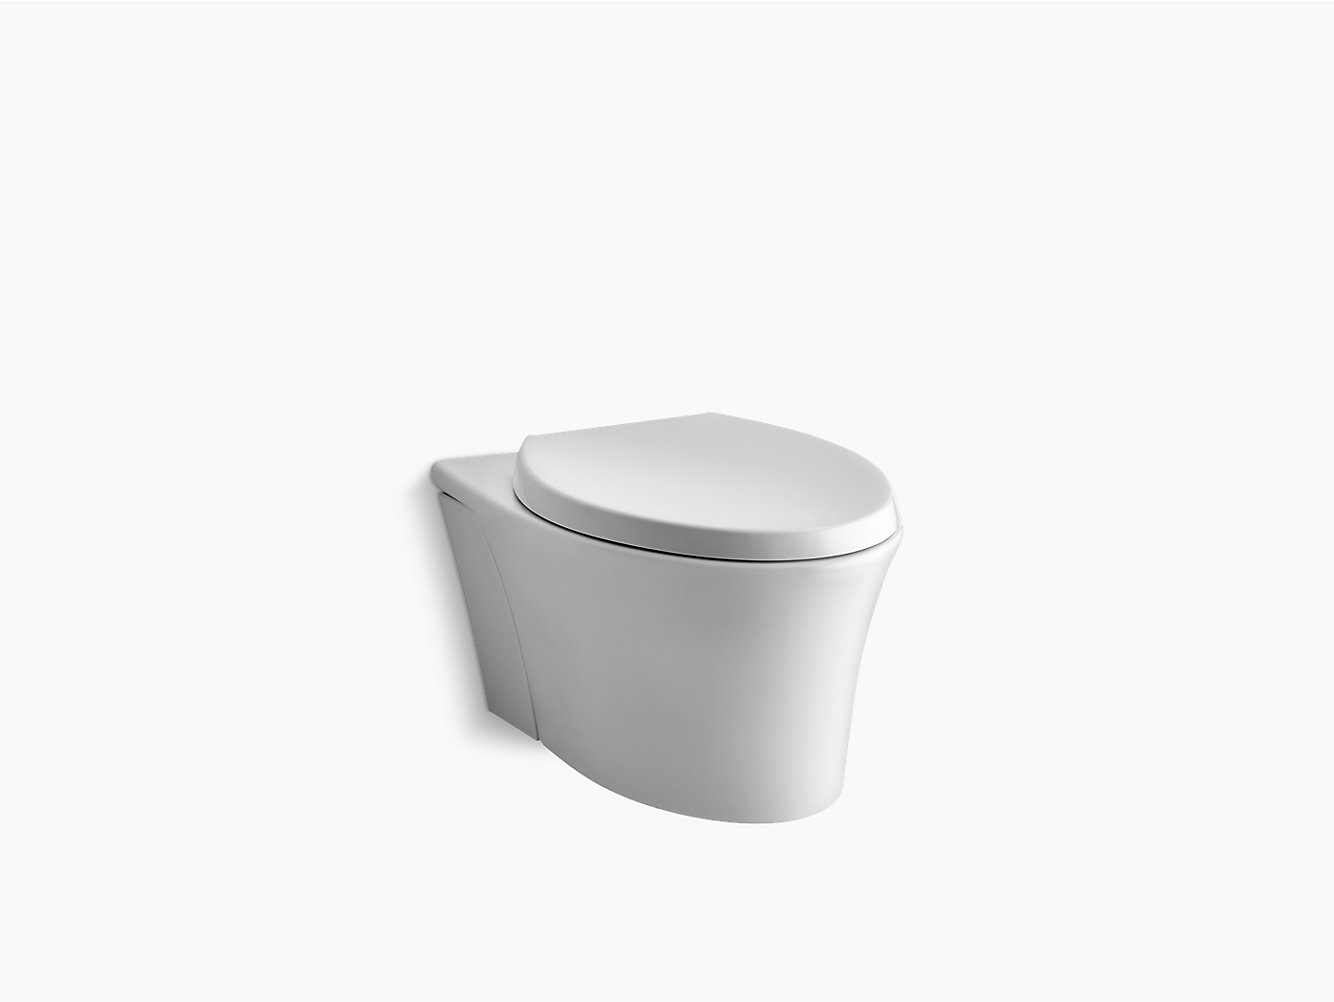 Veil Wall Hung Dual Flush Toilet 3 4 5l With Rimless Flushing